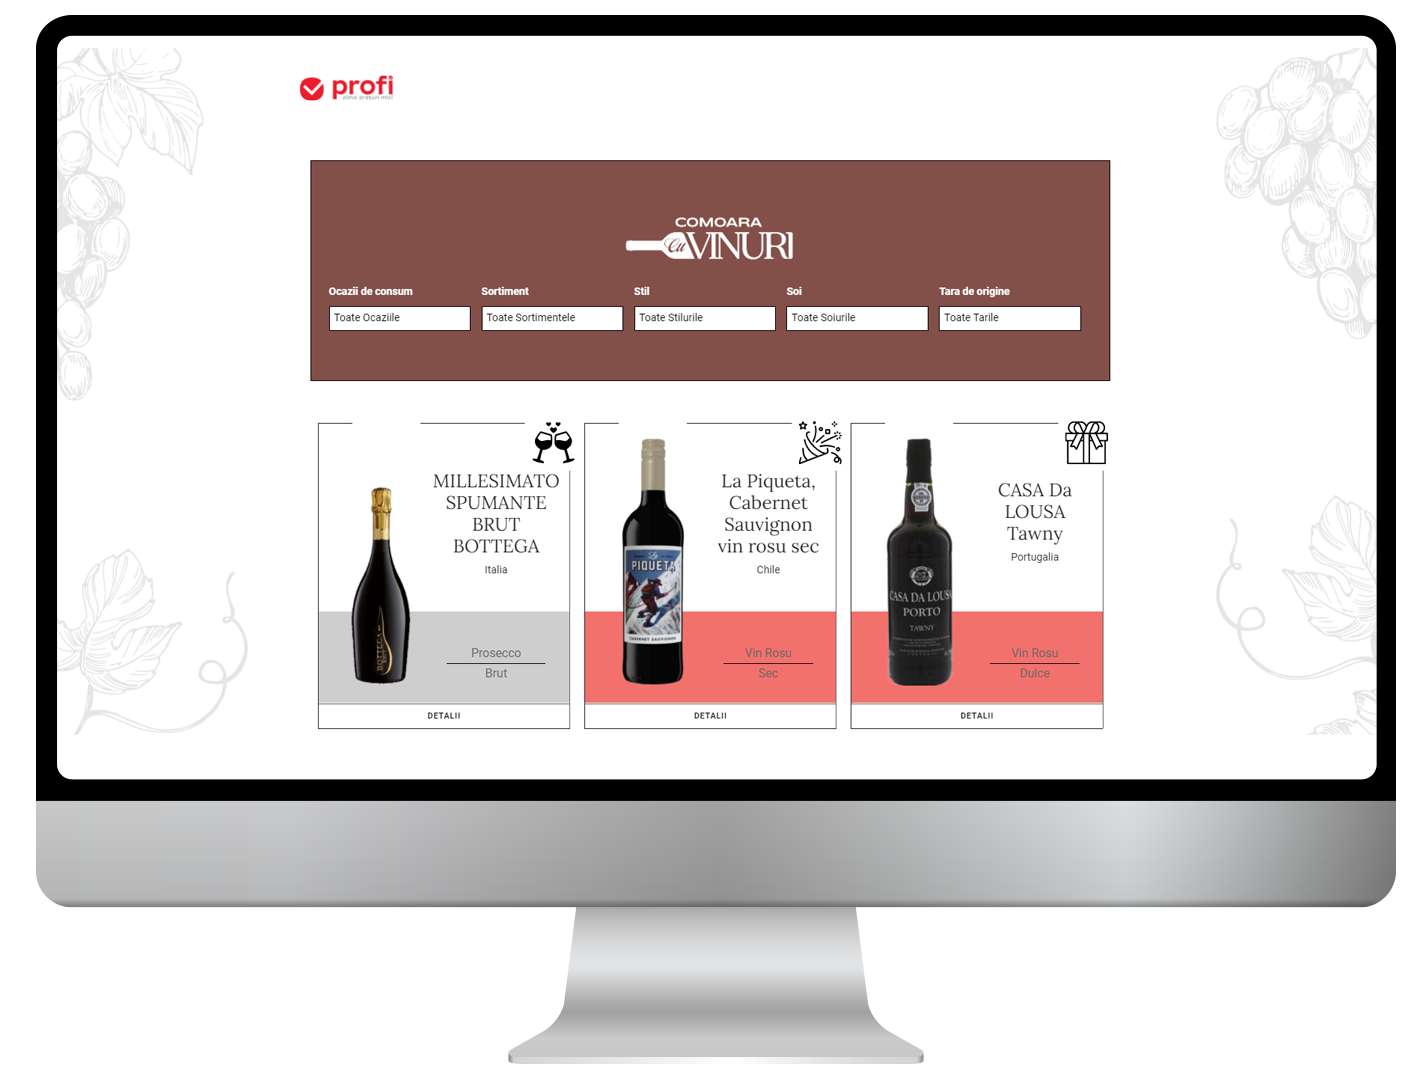 Digital sommelier